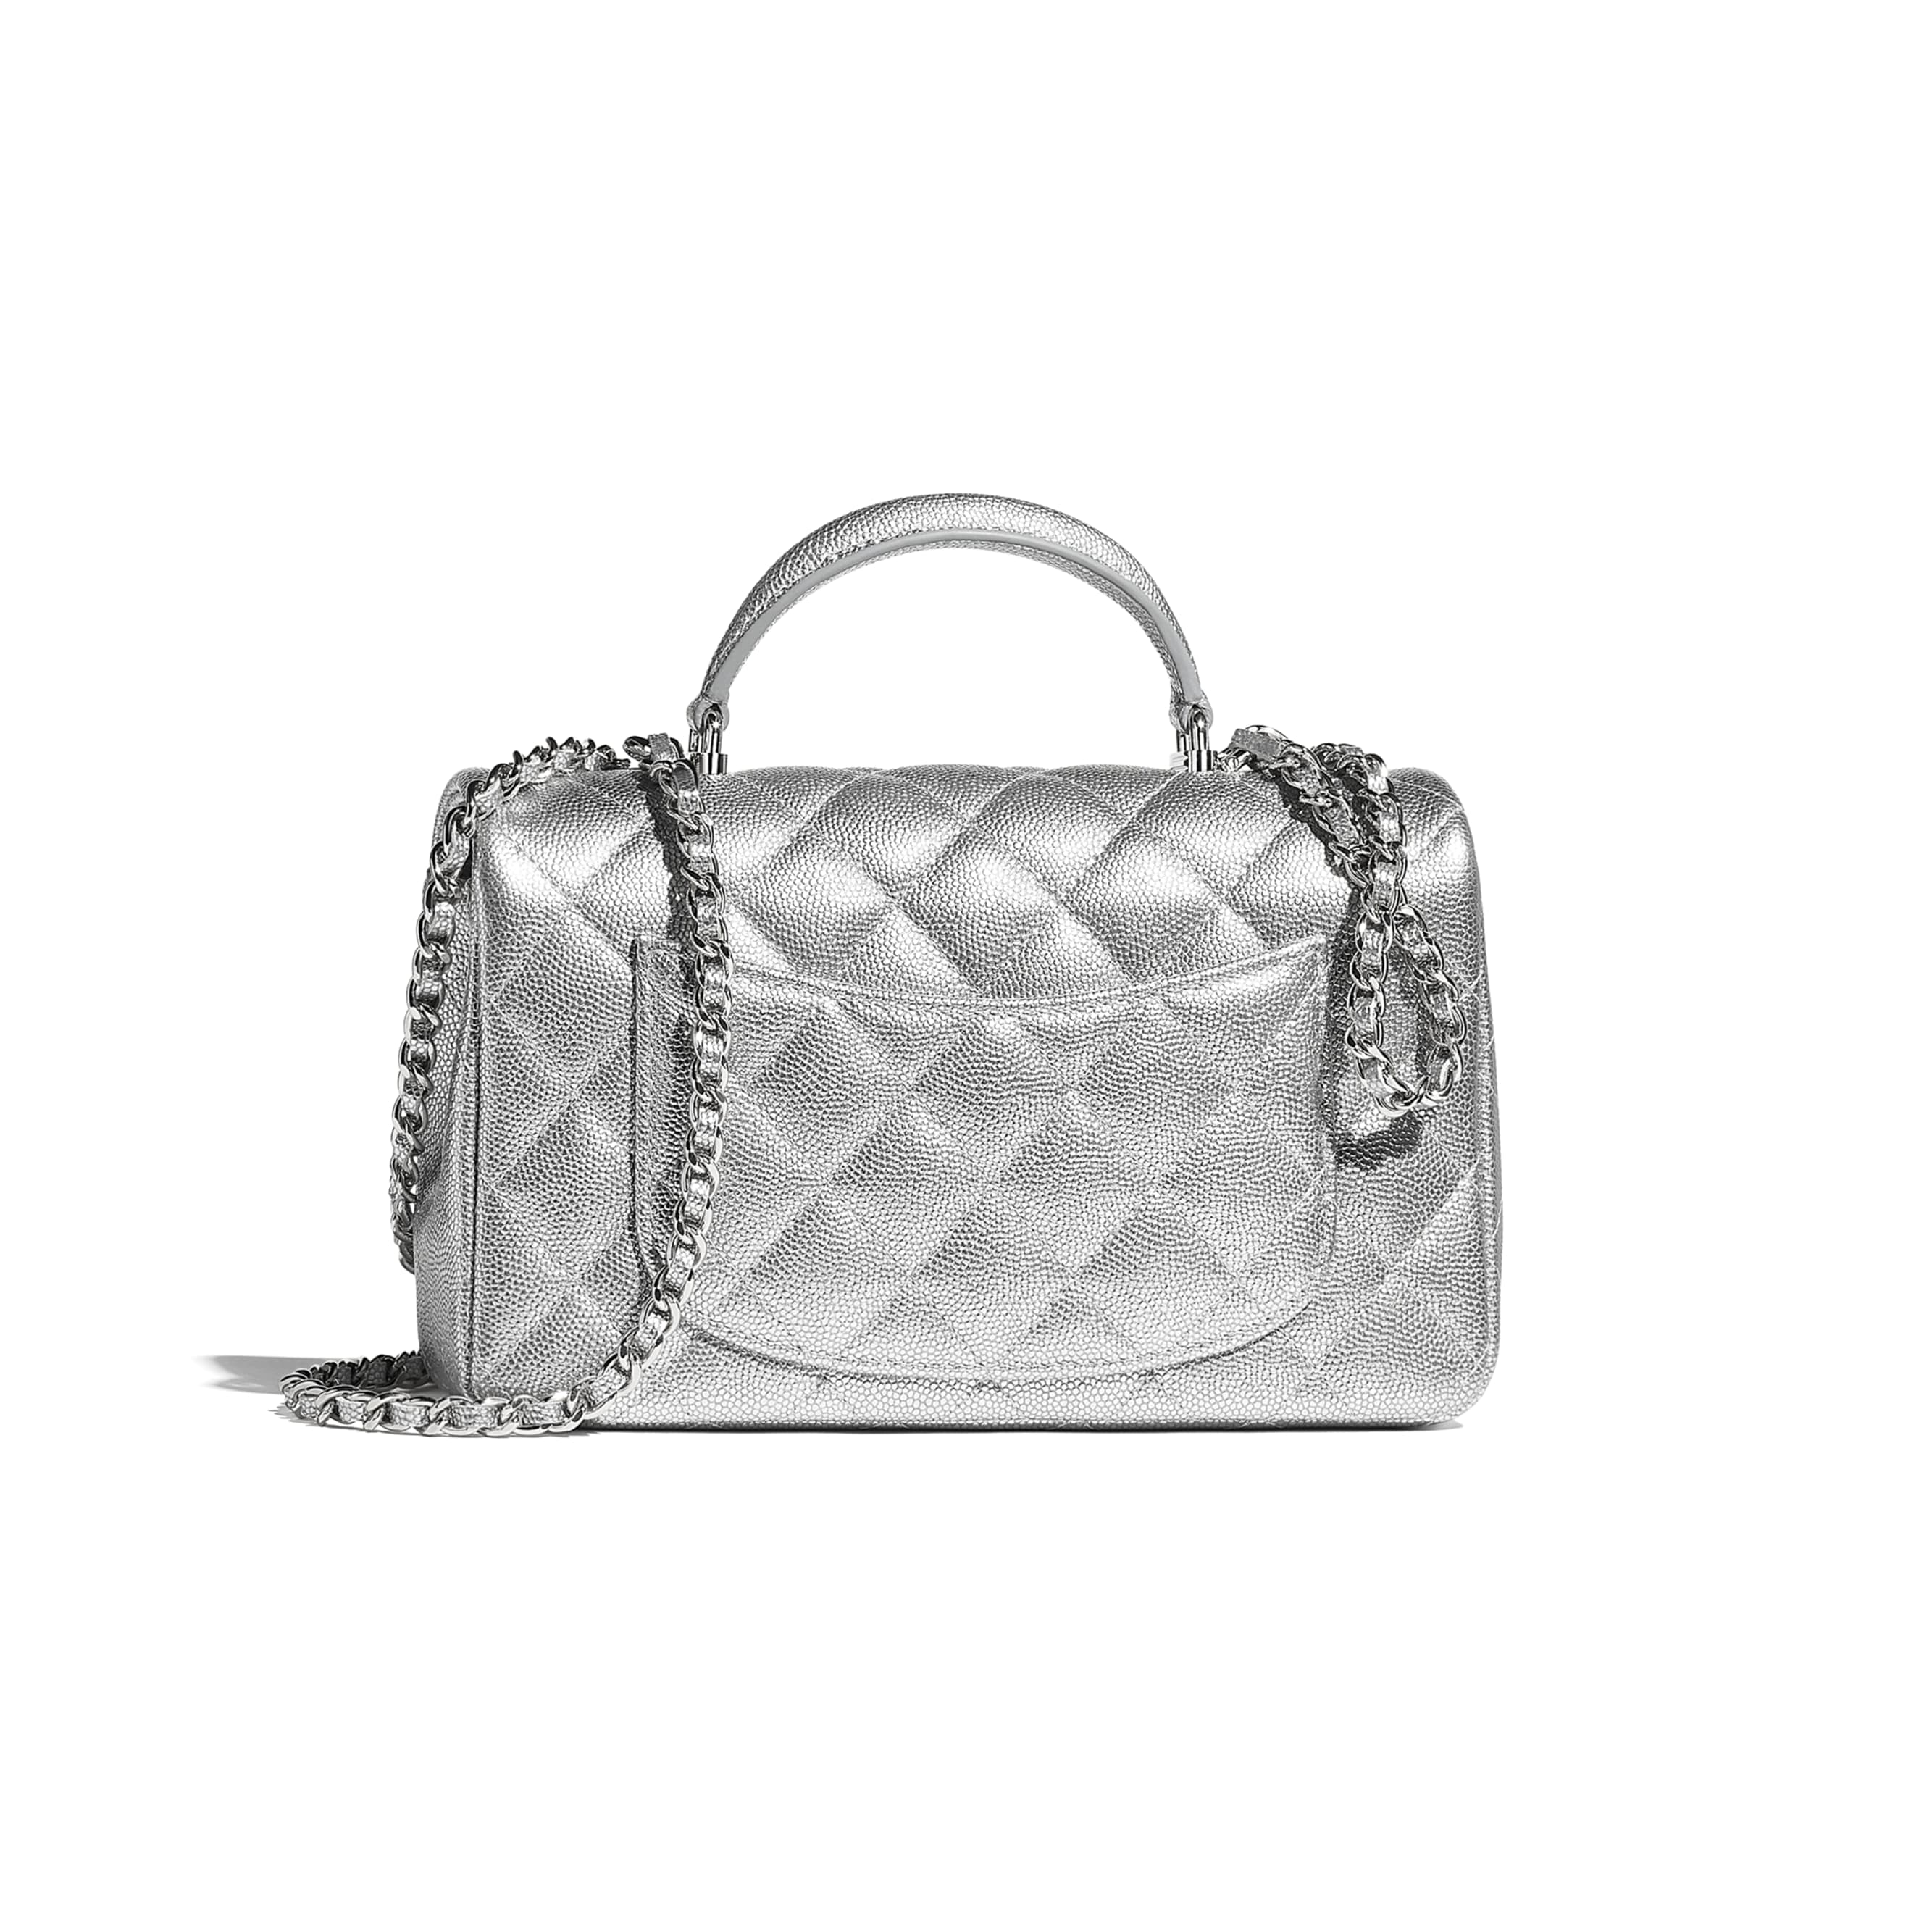 Mini Flap Bag with Top Handle - Silver - Metallic Grained Calfskin & Silver-Tone Metal - CHANEL - Alternative view - see standard sized version